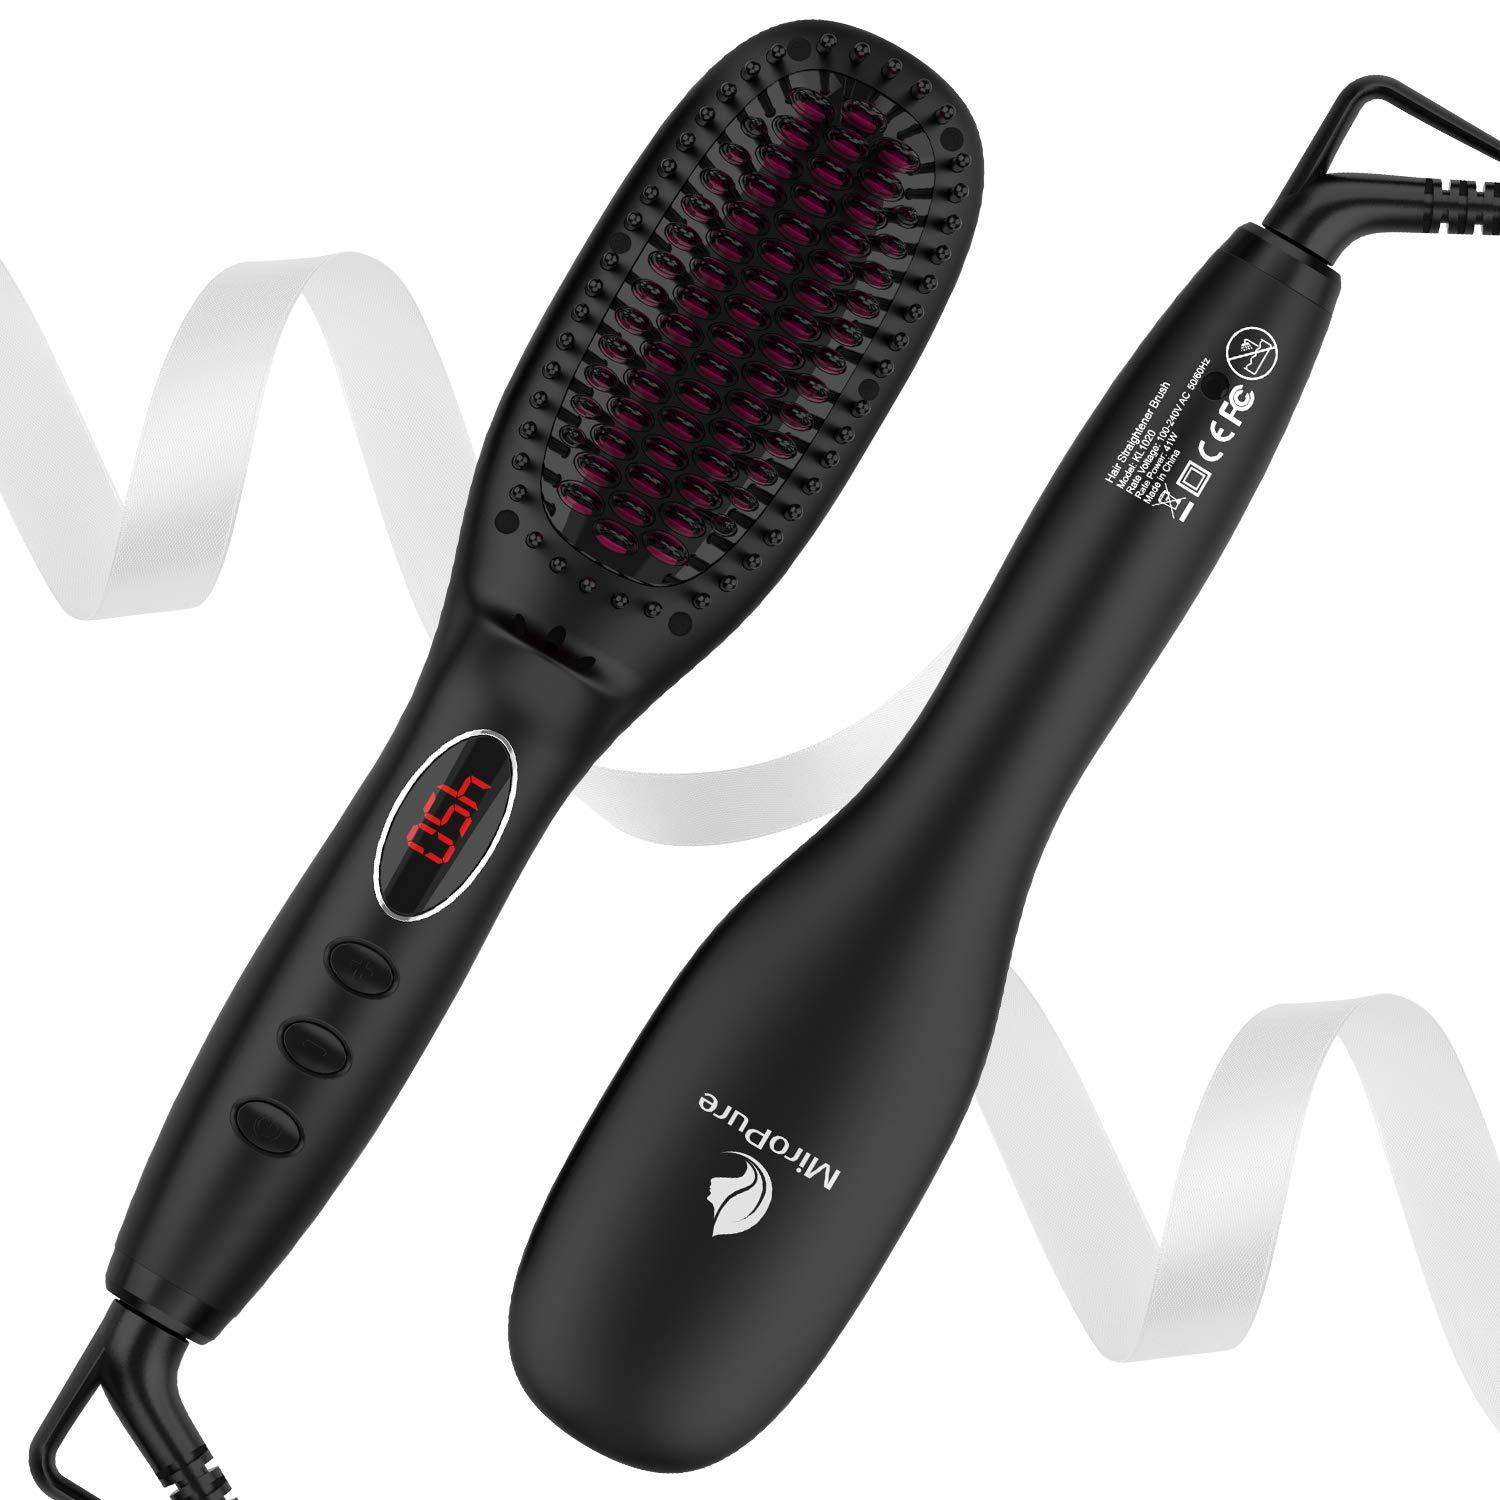 MiroPure KL1020 Hair Straightener Brush